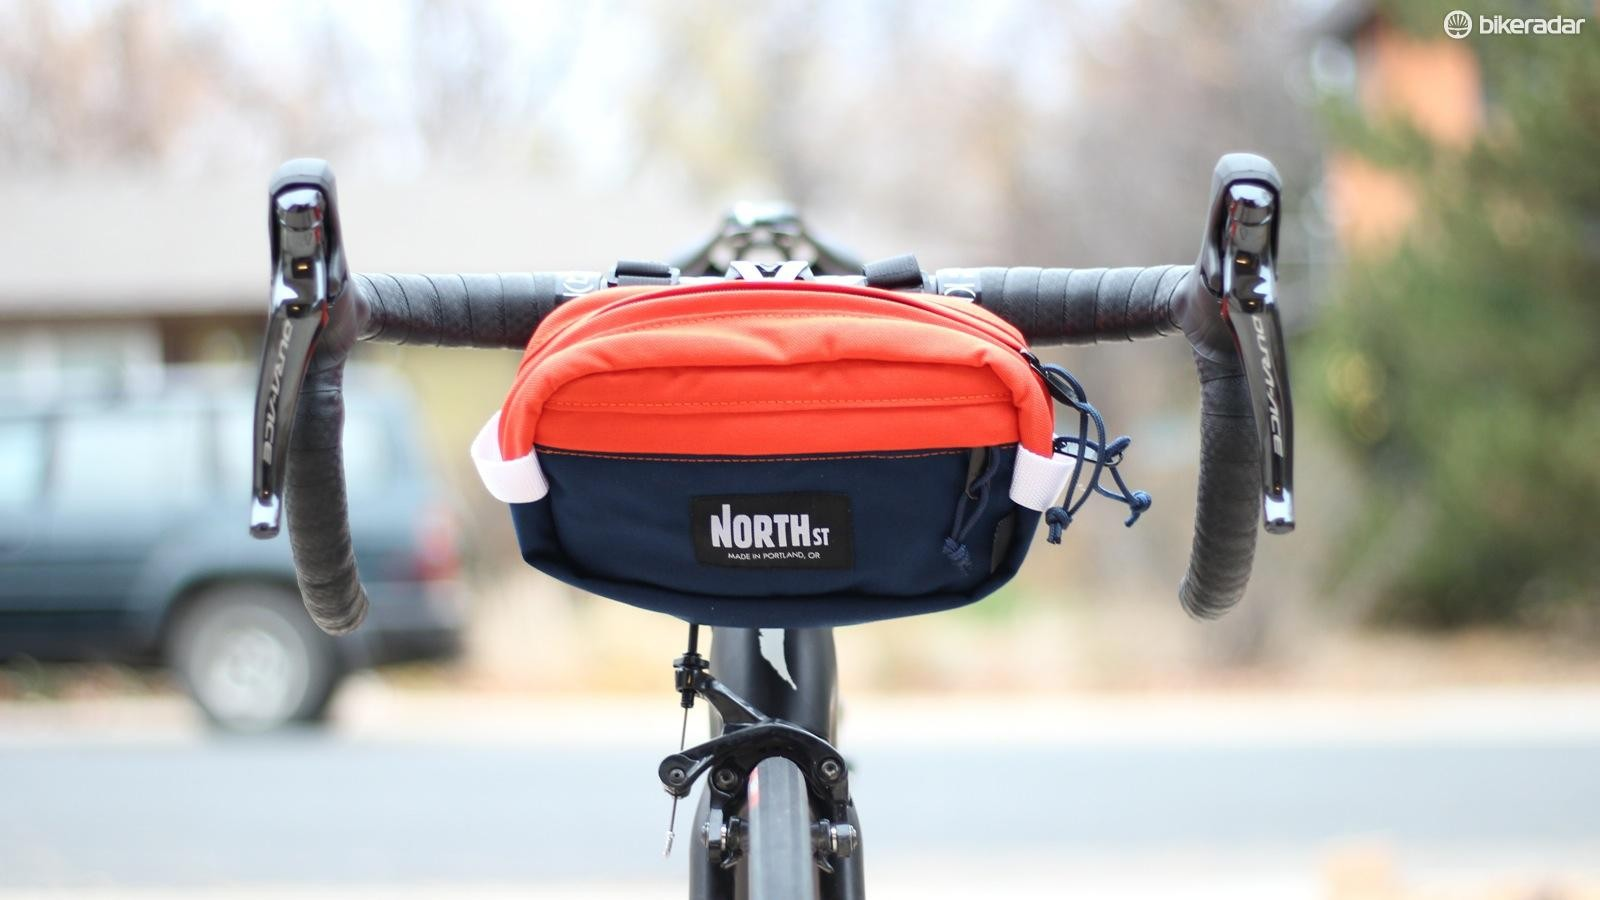 North St makes handlebar bags to order in Portland, Oregon